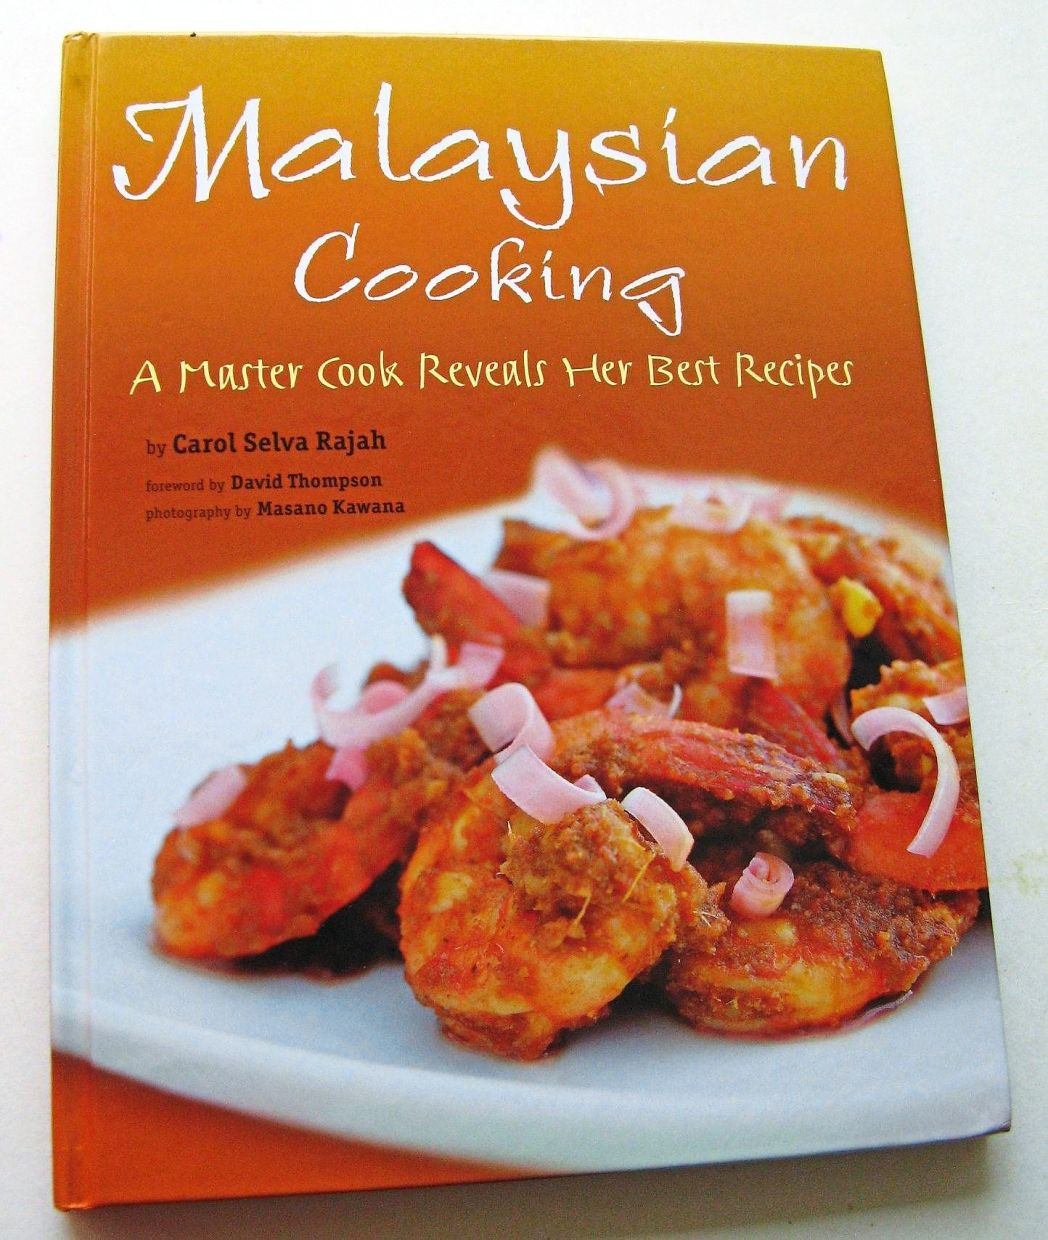 Carol wrote over 15 cookbooks in her lifetime and was said to be working on another book at the time of her death. — Malaysian Cooking